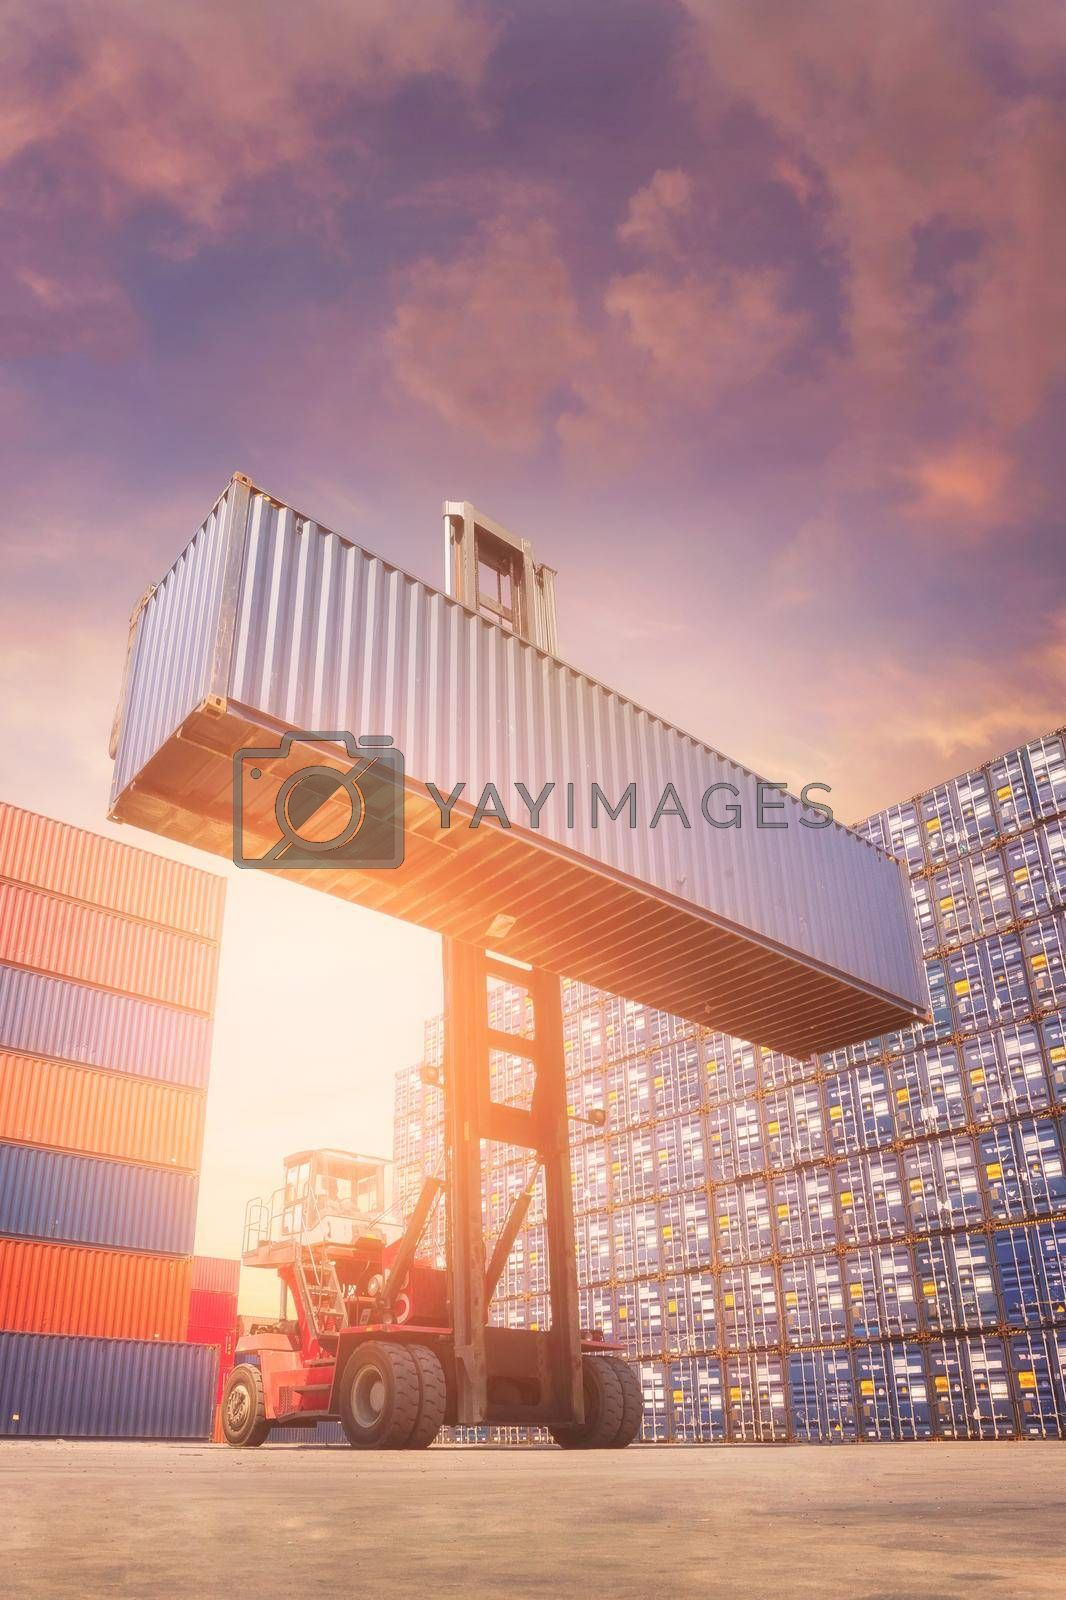 Forklift truck lifting cargo container in shipping yard for transportation import,export and logistic industrial concept